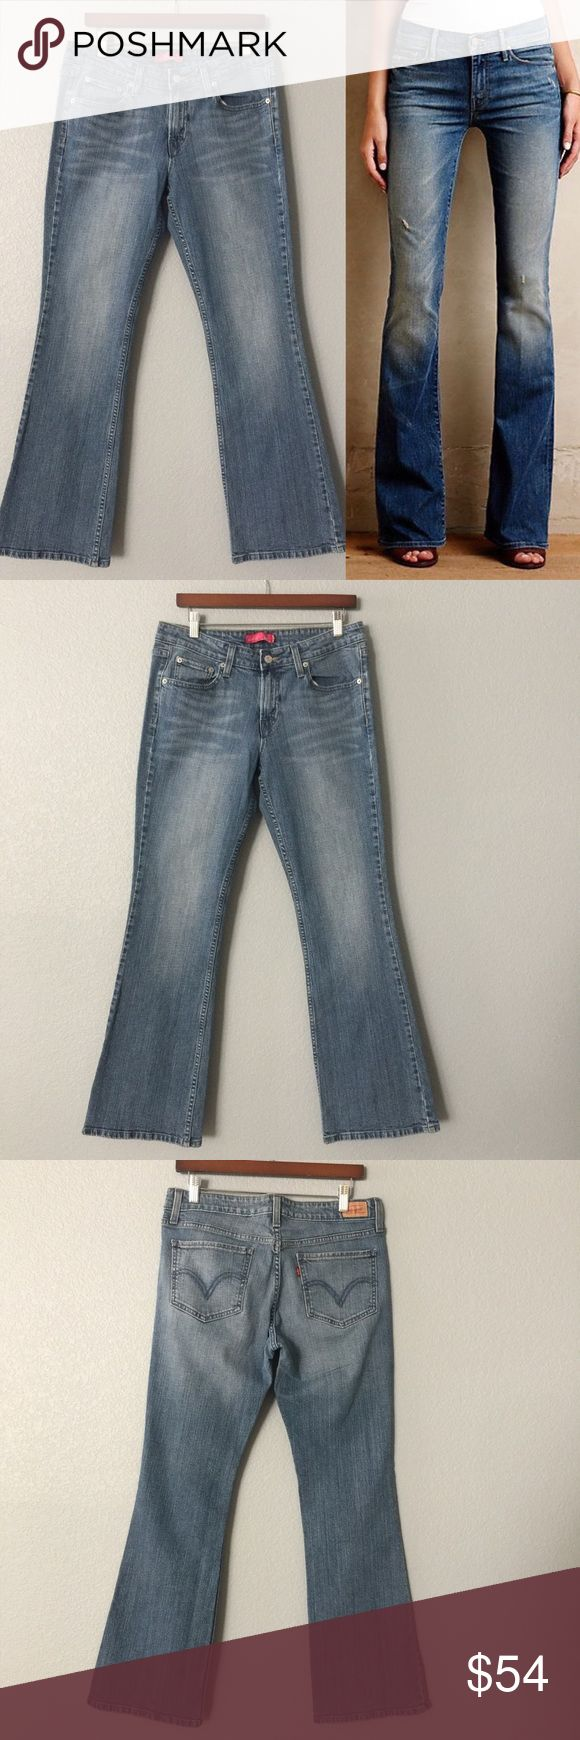 Medium wash boot cut Levi's NWOT The classic Levi's that never go out of style, this must have style, comes in a size 11 also known as a 30, it does say ultra low rise but this Is more of a mid rise with its 9 inch rise. Perfect fit with its 99% cotton and 1% Spandex 👍🏼 this is the old style # 518 that is now the # 715 ✅ will bundle 👌🏼✅🚭 ✅ all reasonable offers will be considered 👍🏼 🚫No Trading 🙅🏻 Poshmark rules only‼️ 📝Measurements taken laying flat…